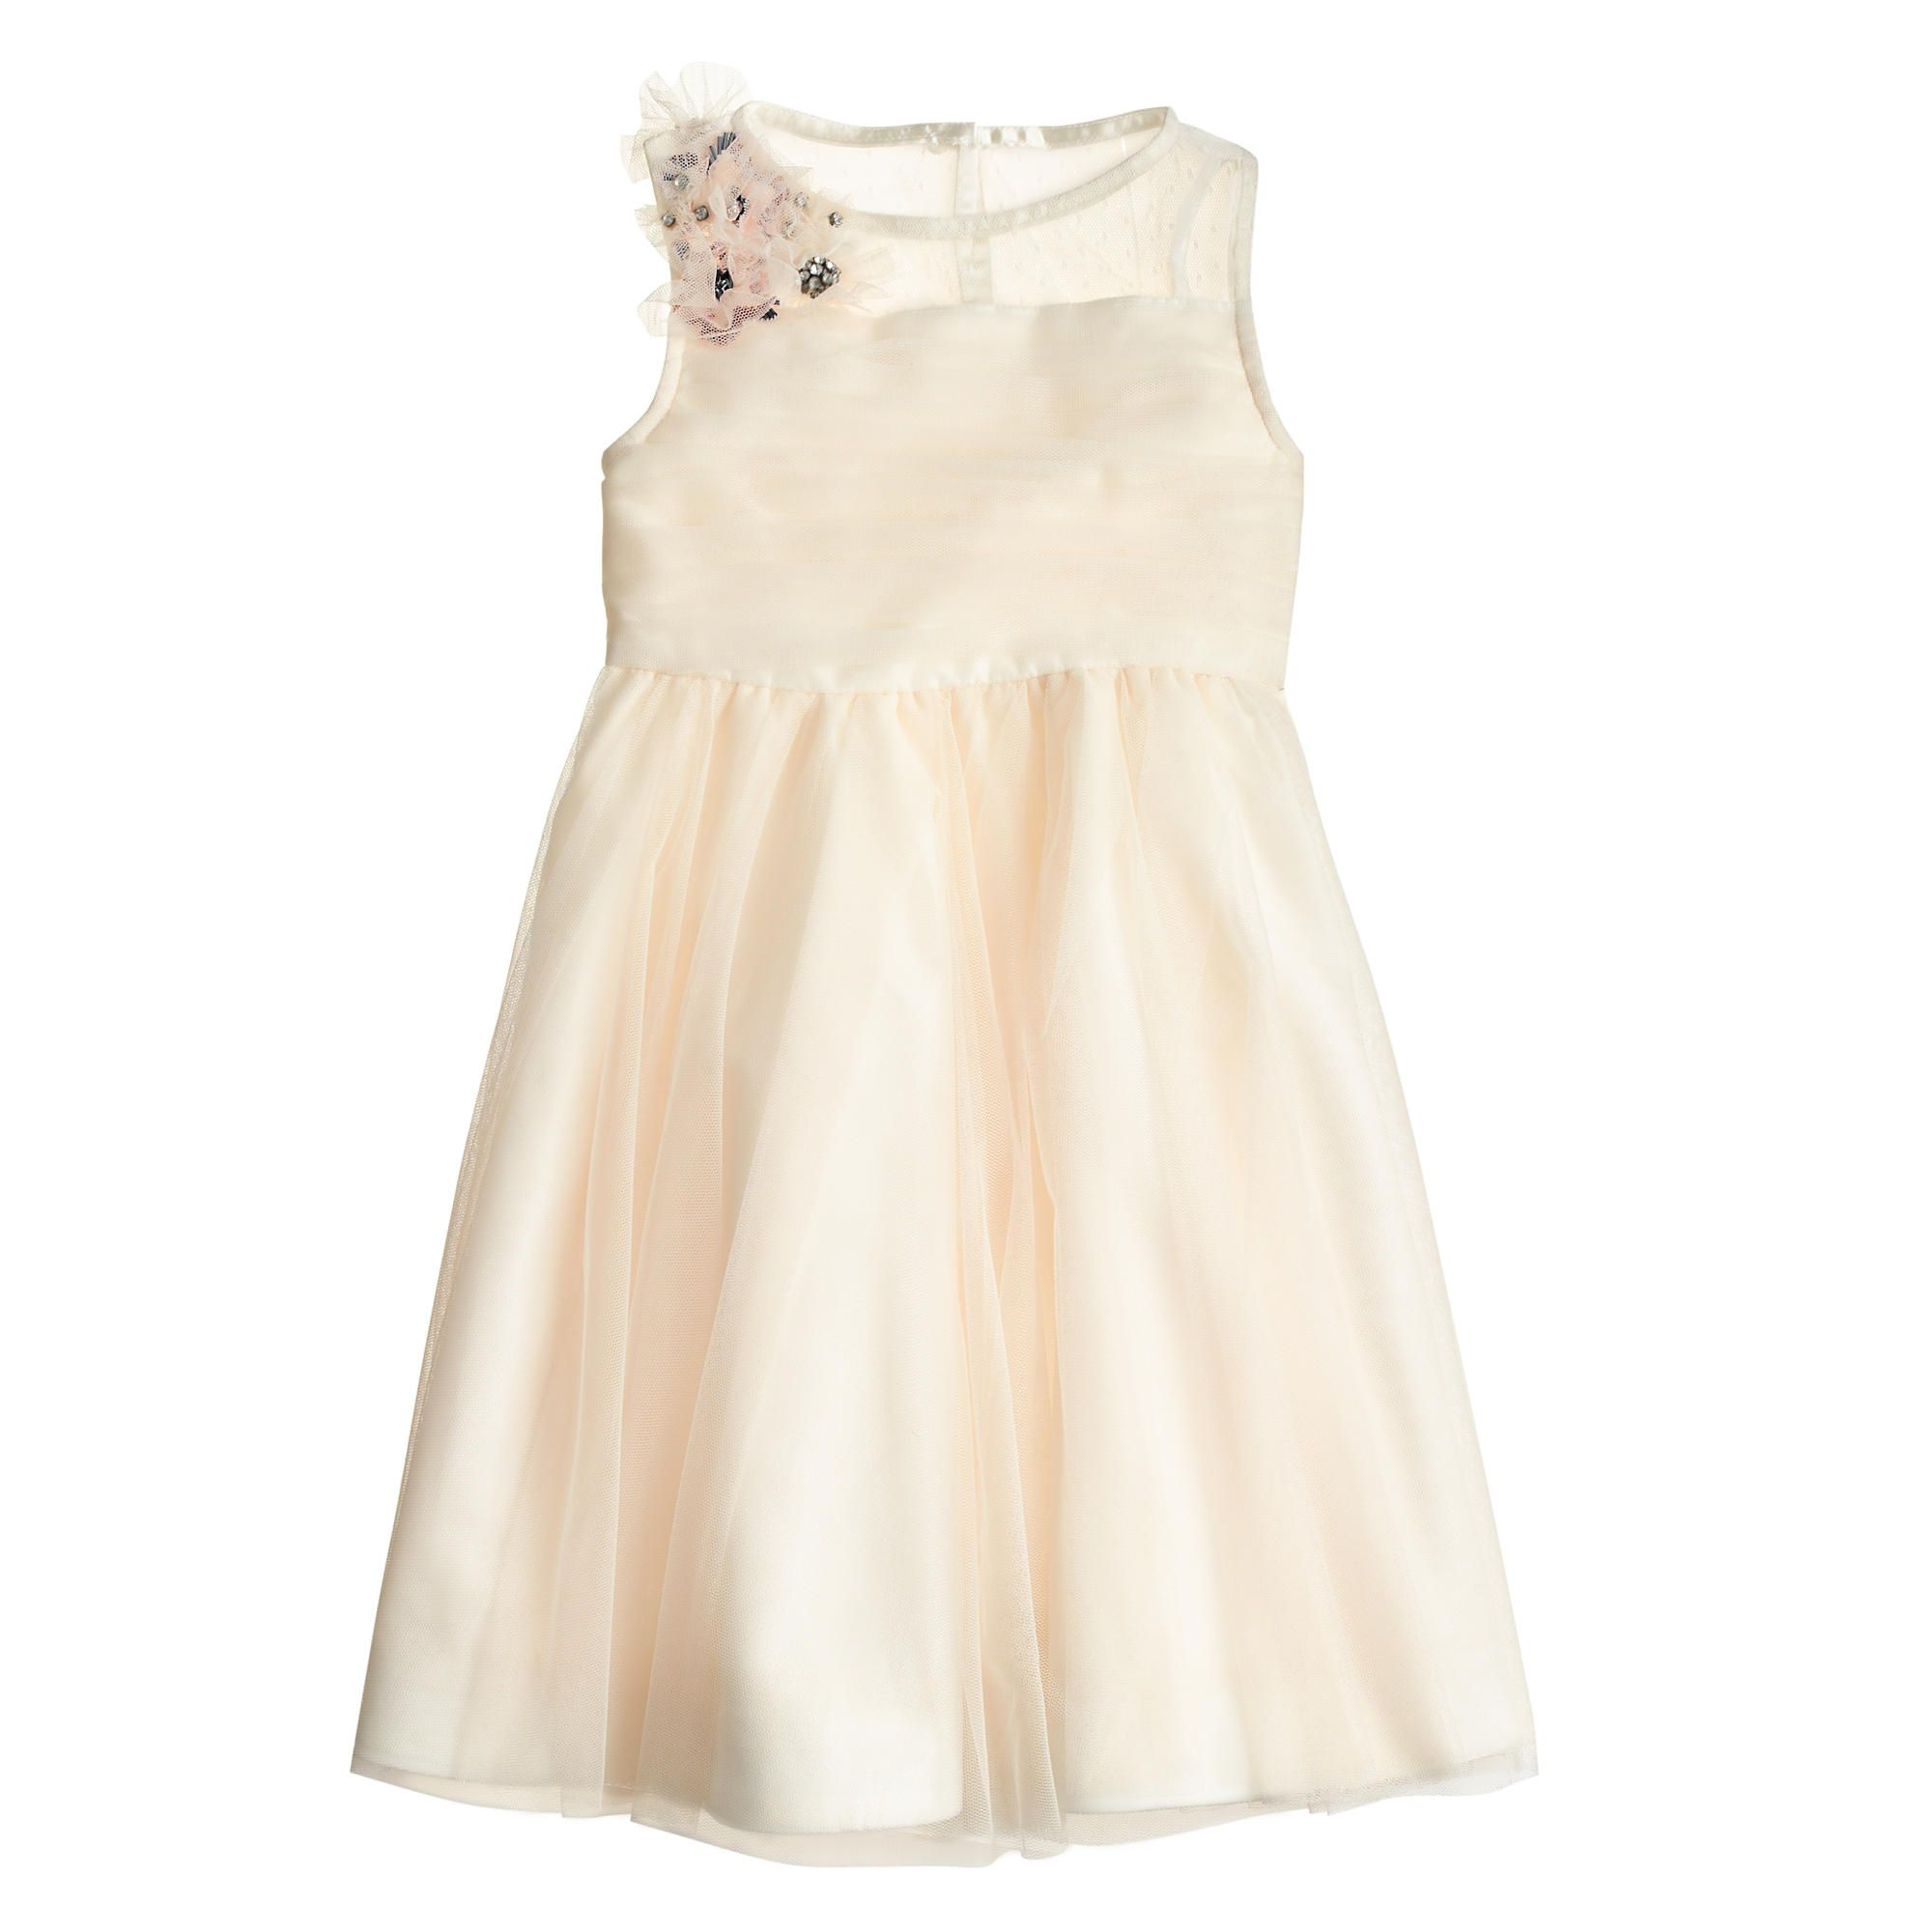 Girls blooming tulle dress specialoccasion dresses j